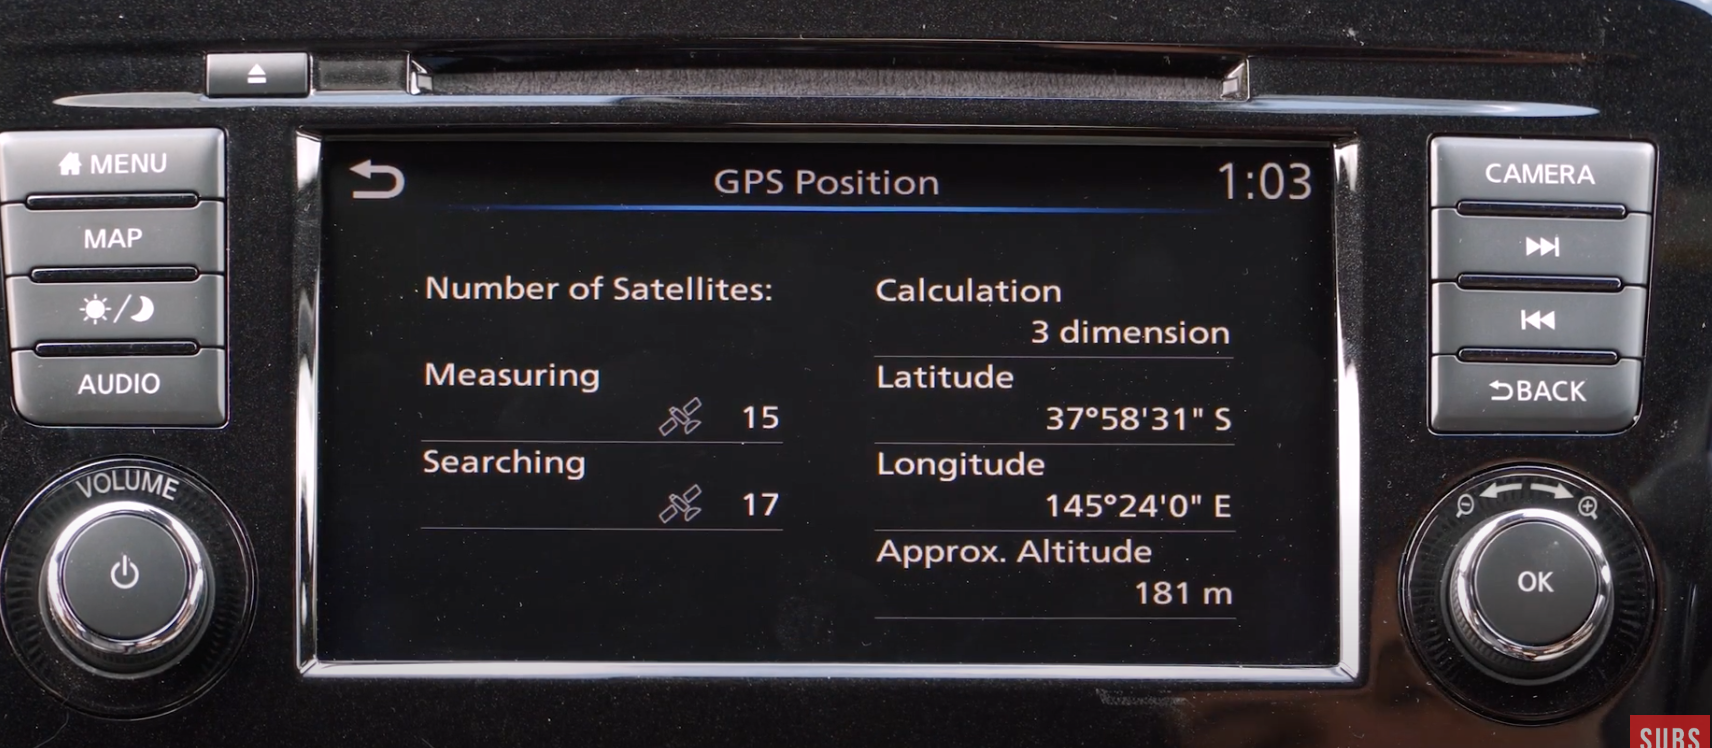 Information about the current GPS position such as number of satellites